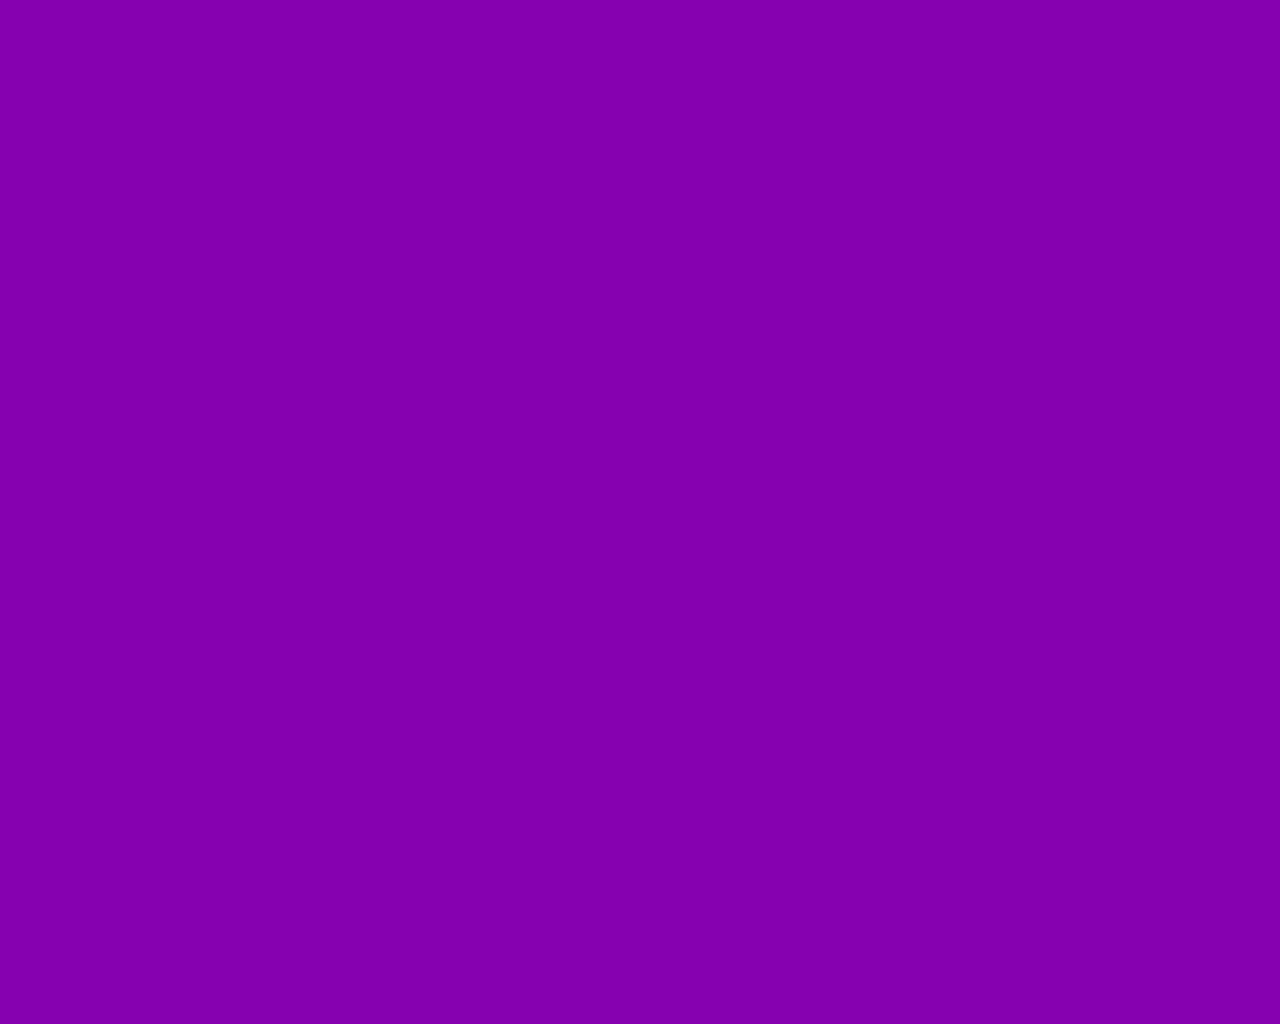 1280x1024 Violet RYB Solid Color Background